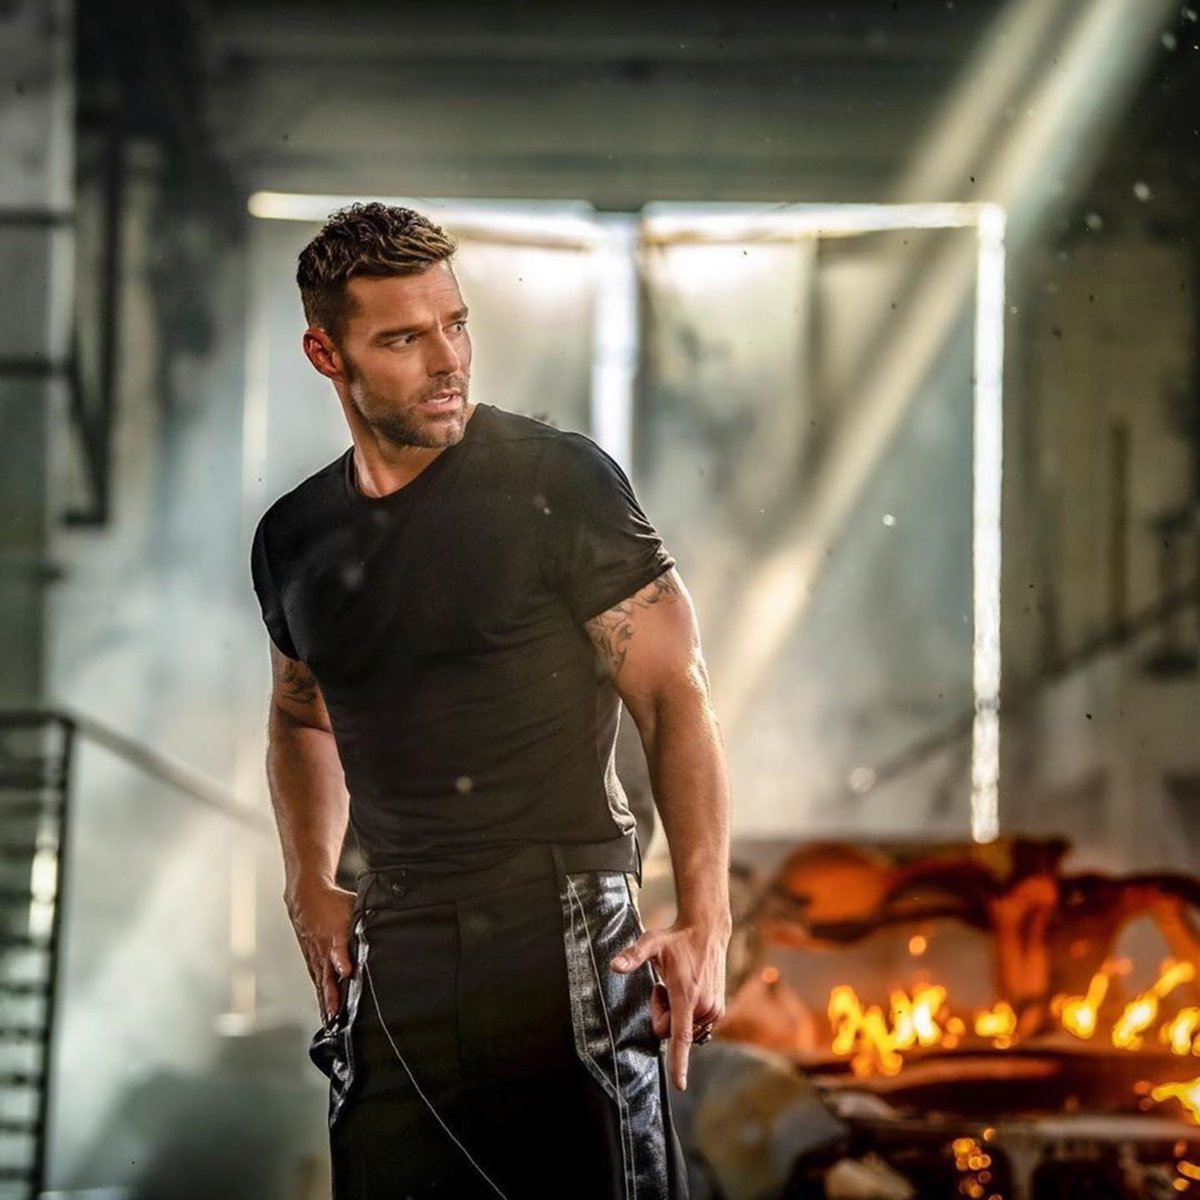 Replying to @ricky_martin: 📸: @chinolemus   #FaltaAmor  Director: Carlos Pérez @elasticpeople